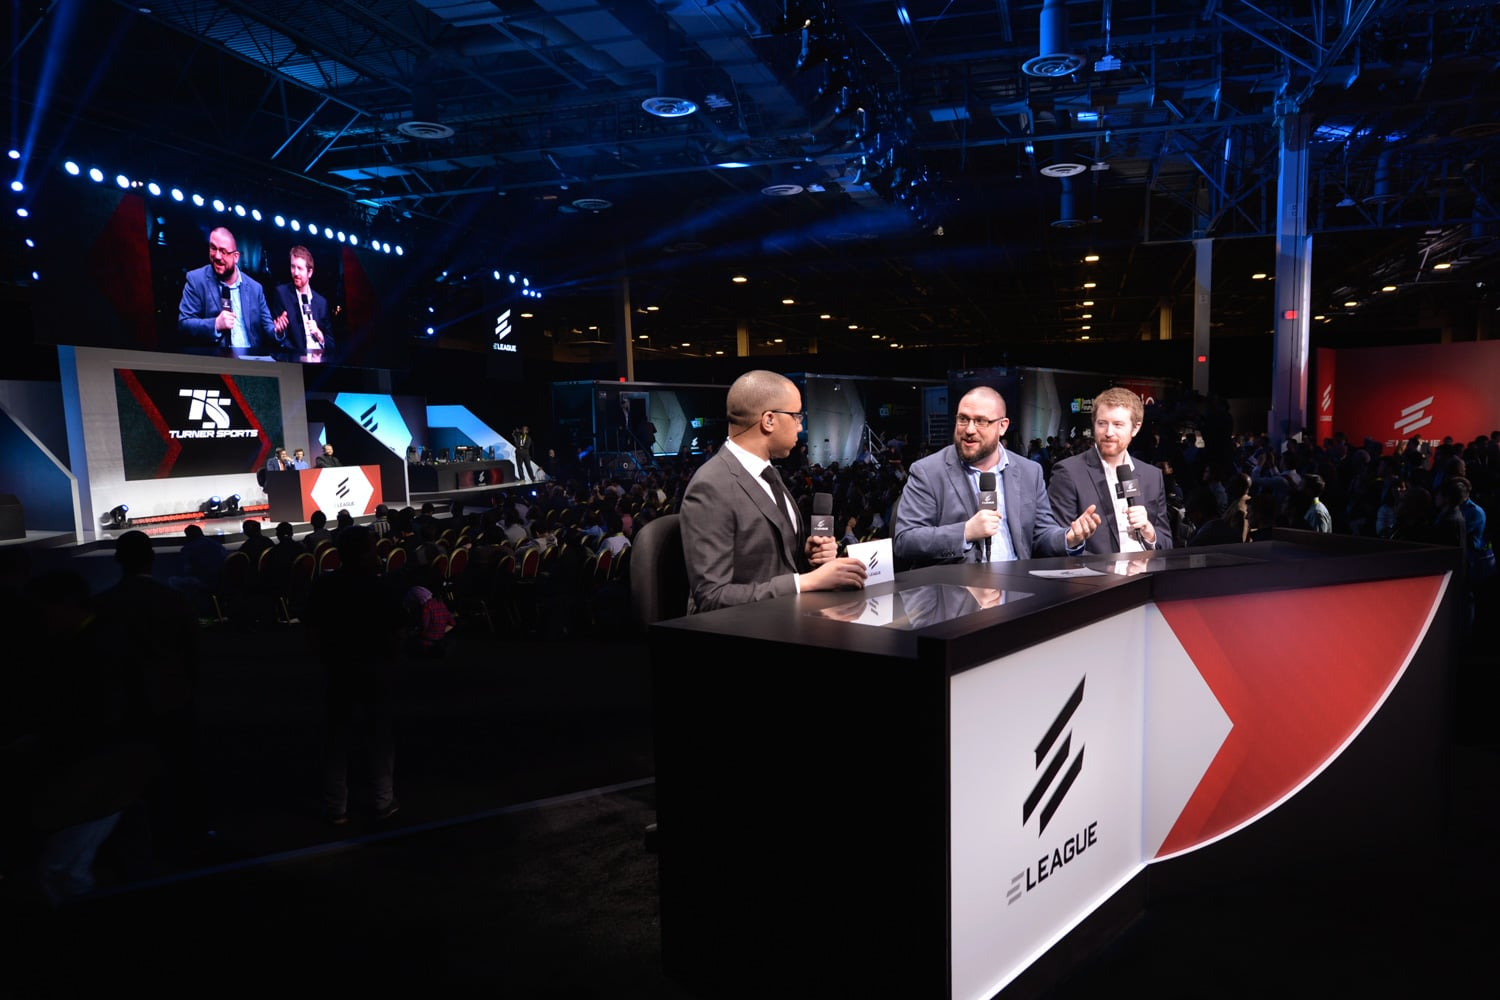 ELEAGUE Teams Up With Sliver.tv To Feature VR Broadcasting And Streaming